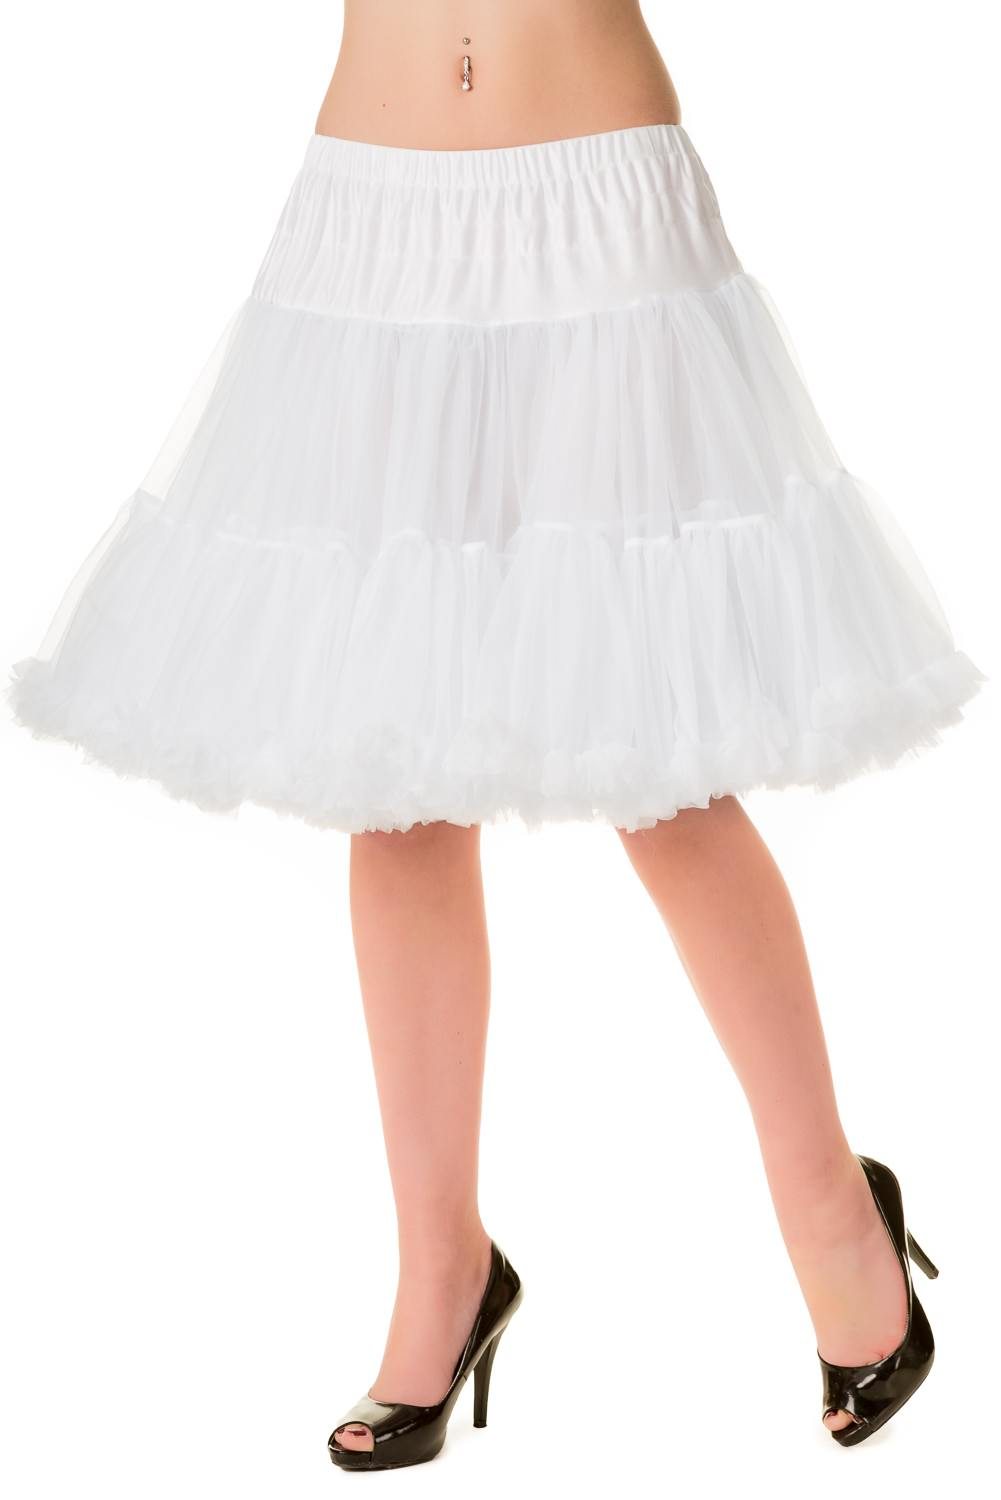 Walkabout Petticoat in White